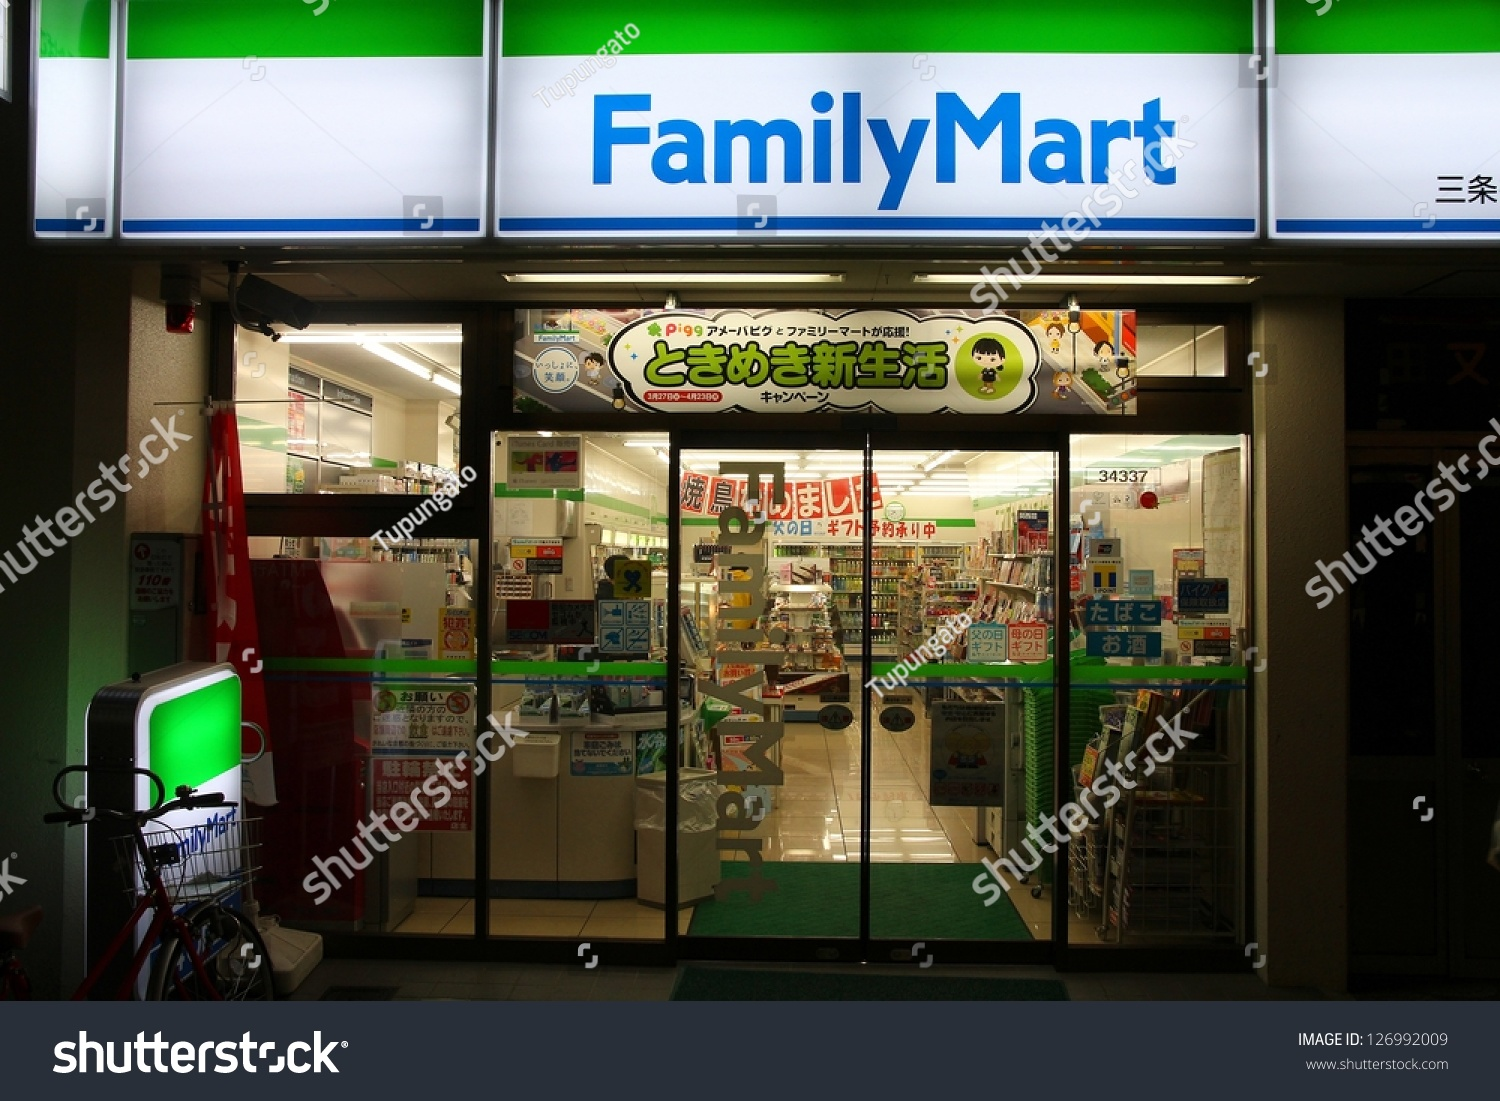 Kyoto japan april 17 family mart stock photo 126992009 for Convenience store exterior design